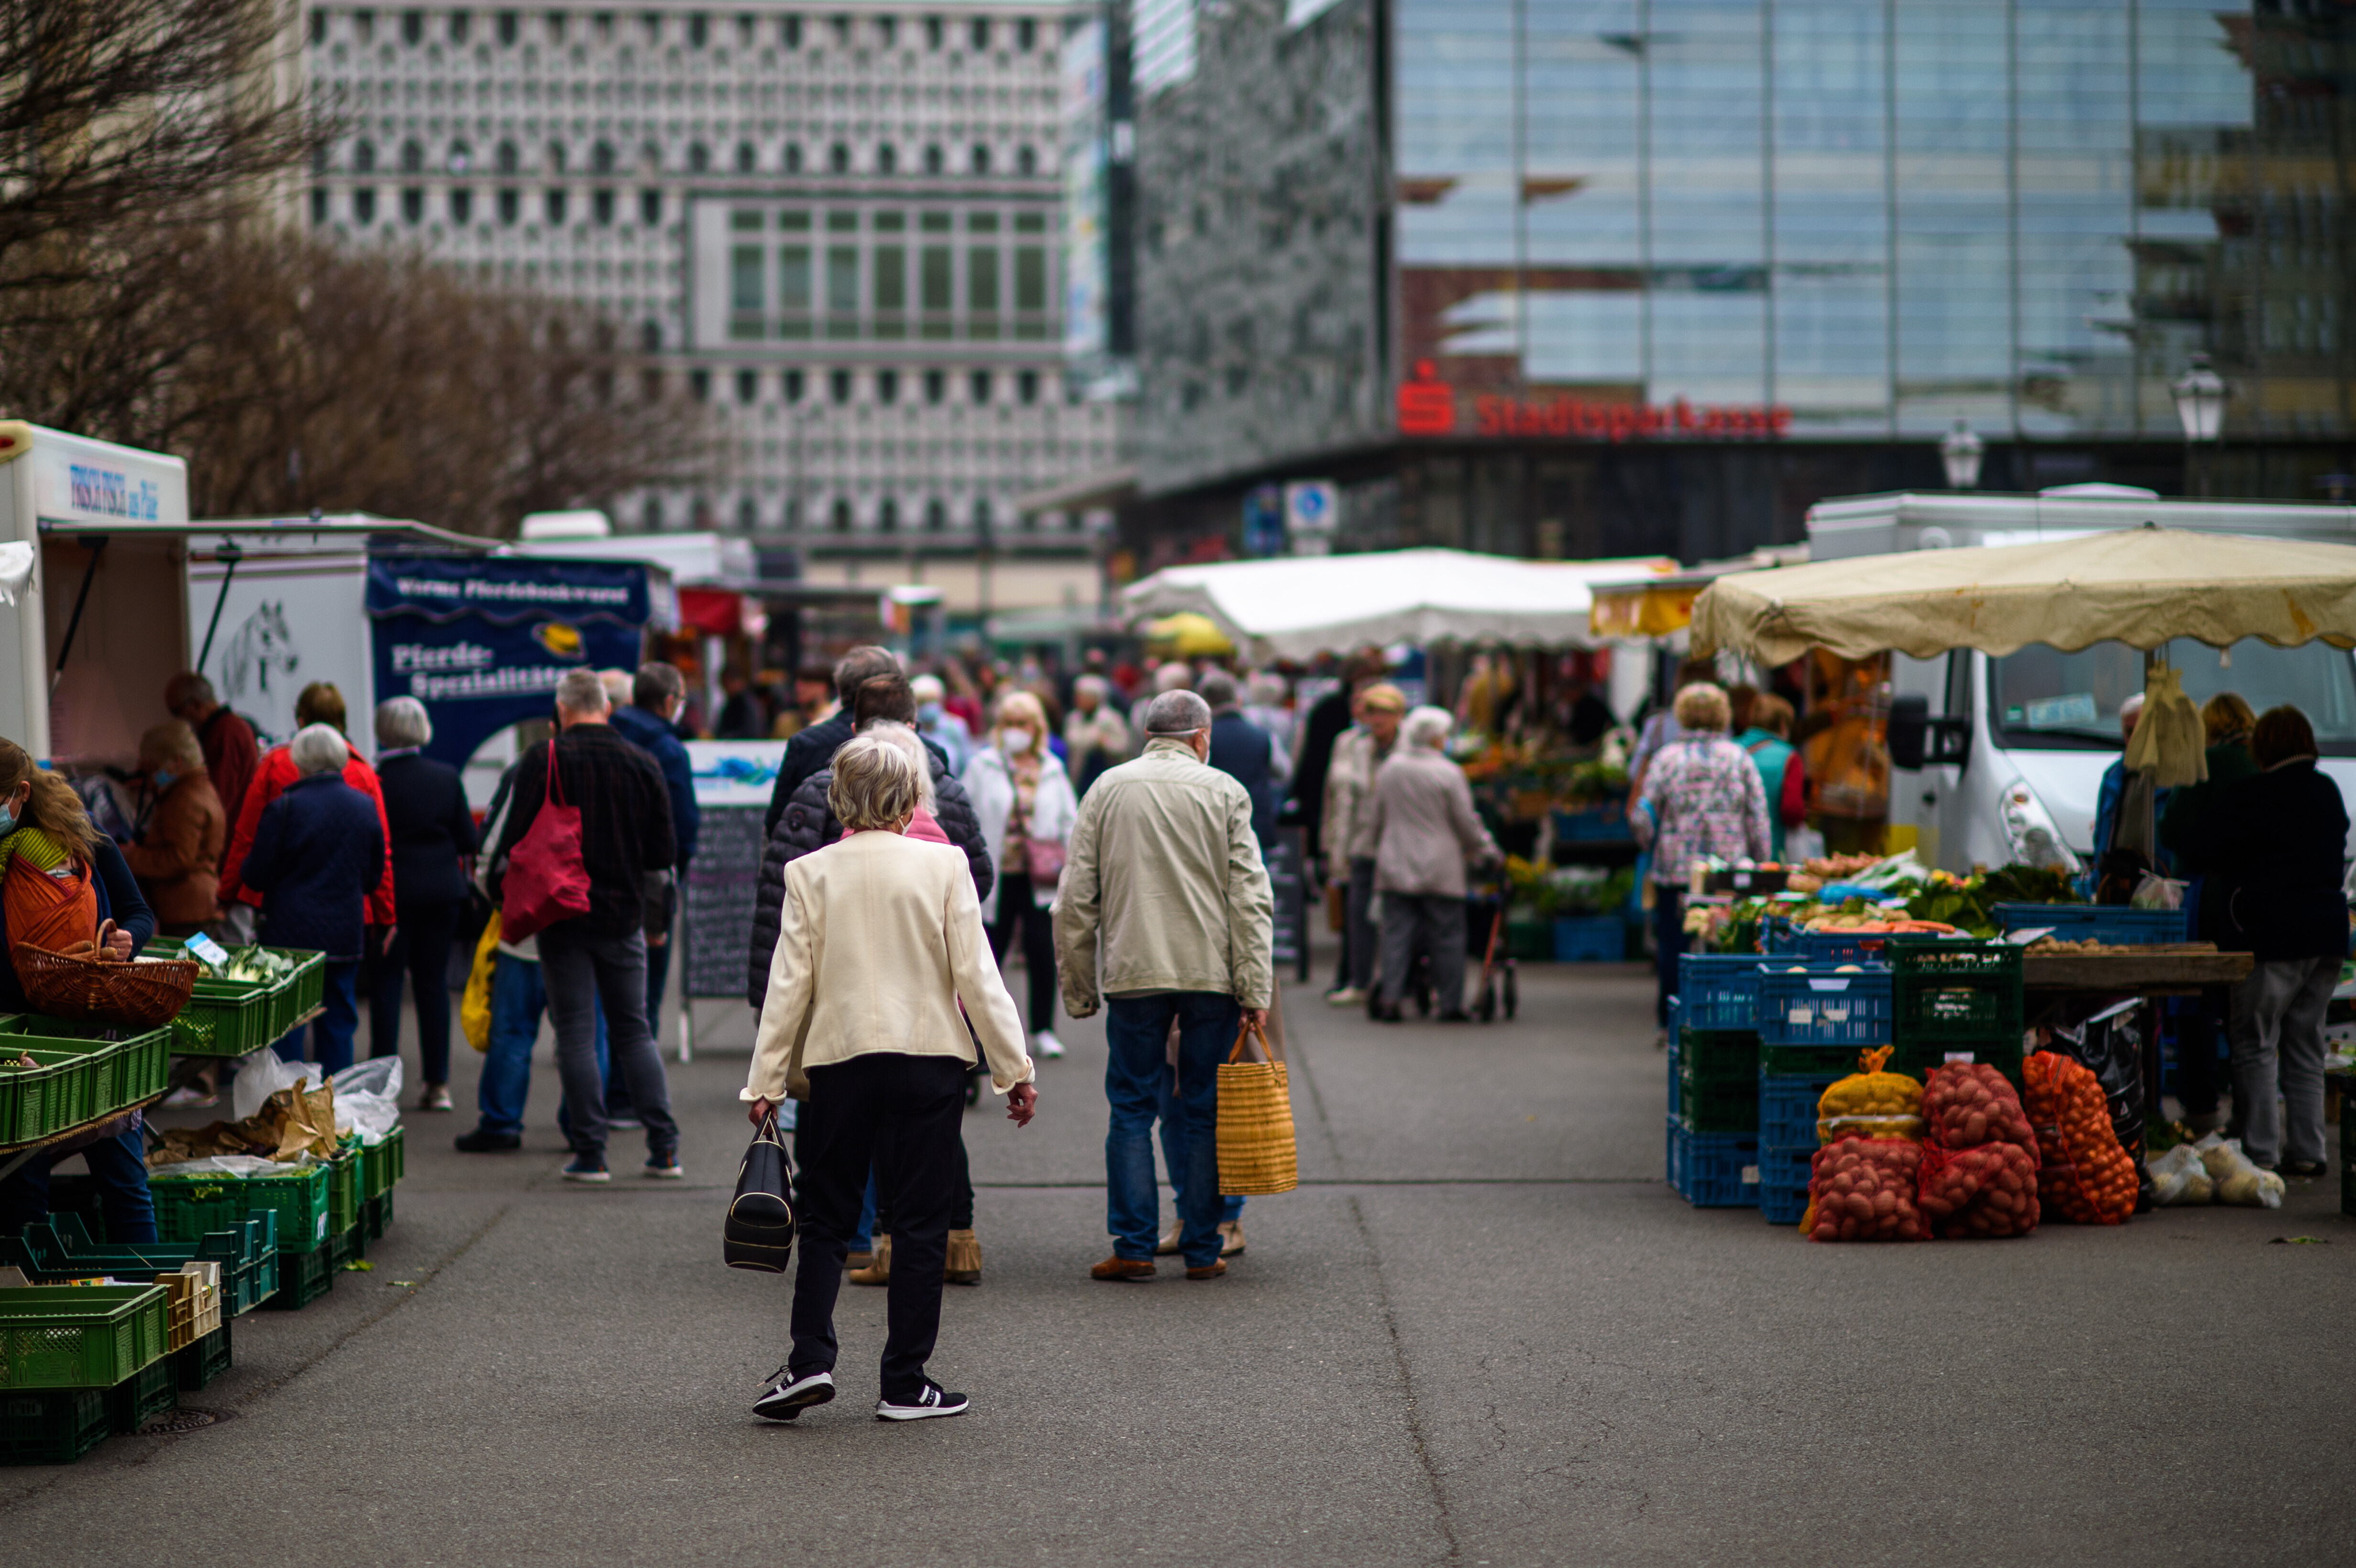 German inflation hits 29-year high as energy costs spike across Europe